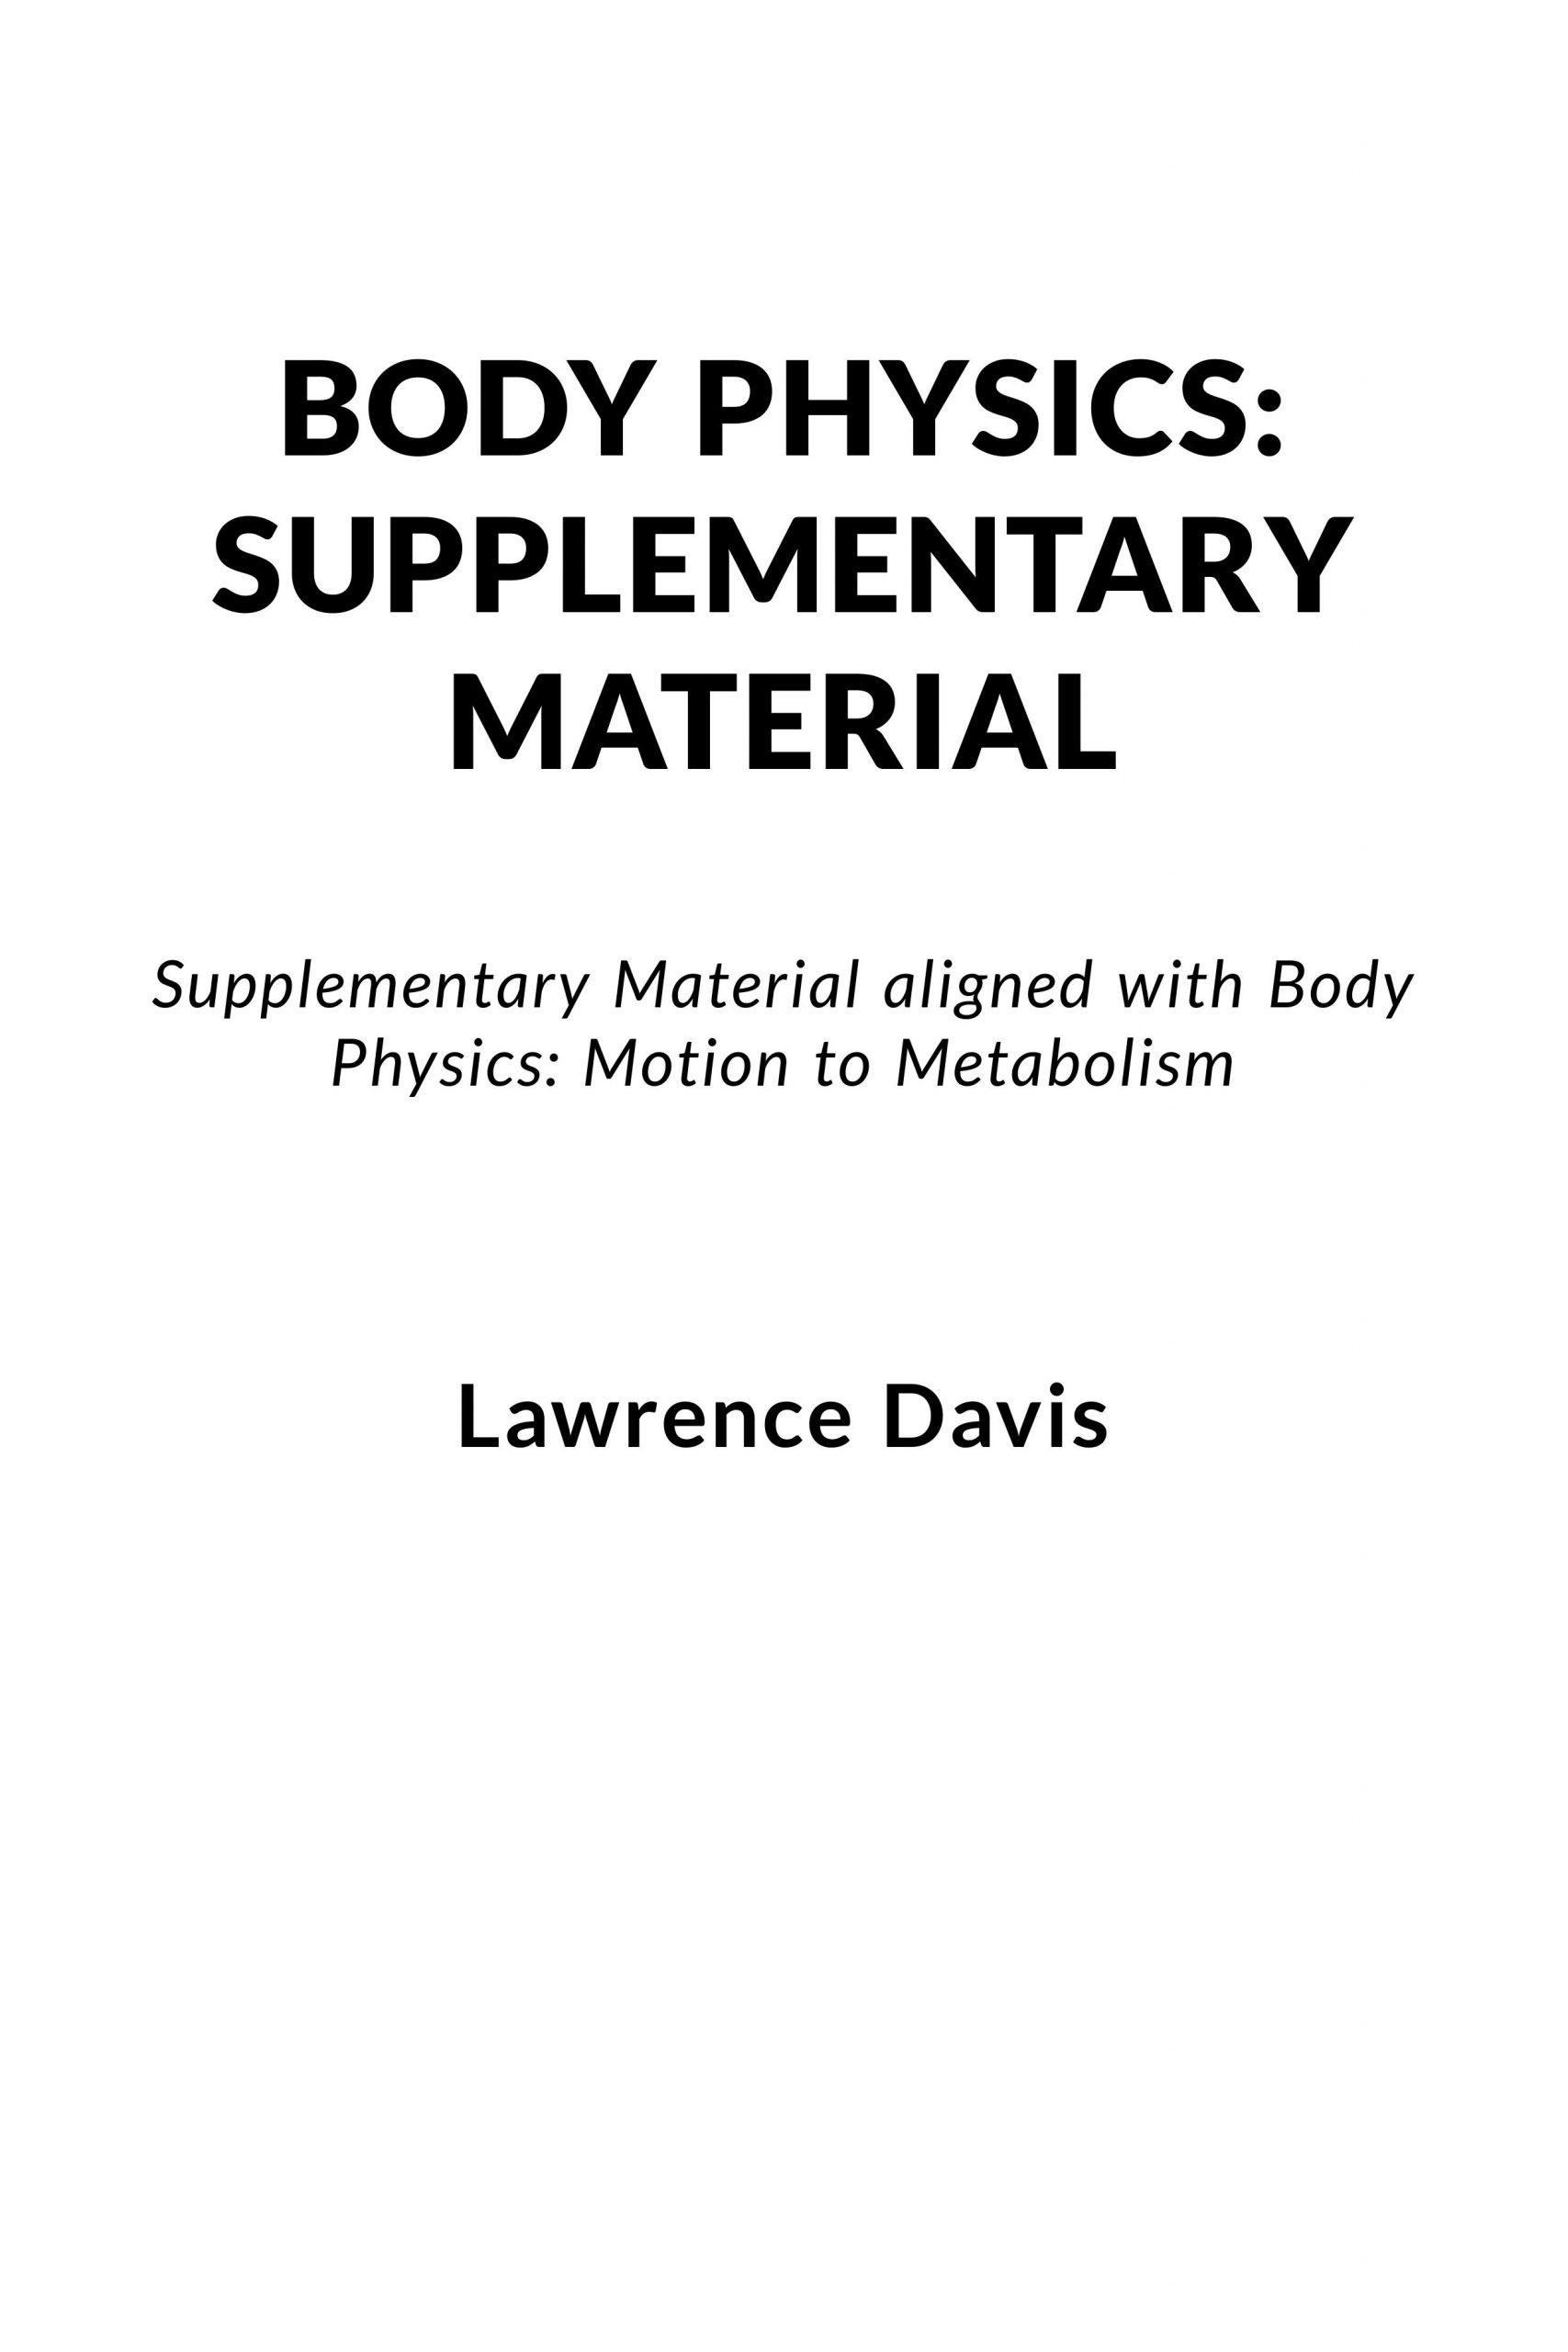 Body Physics: Supplementary Material